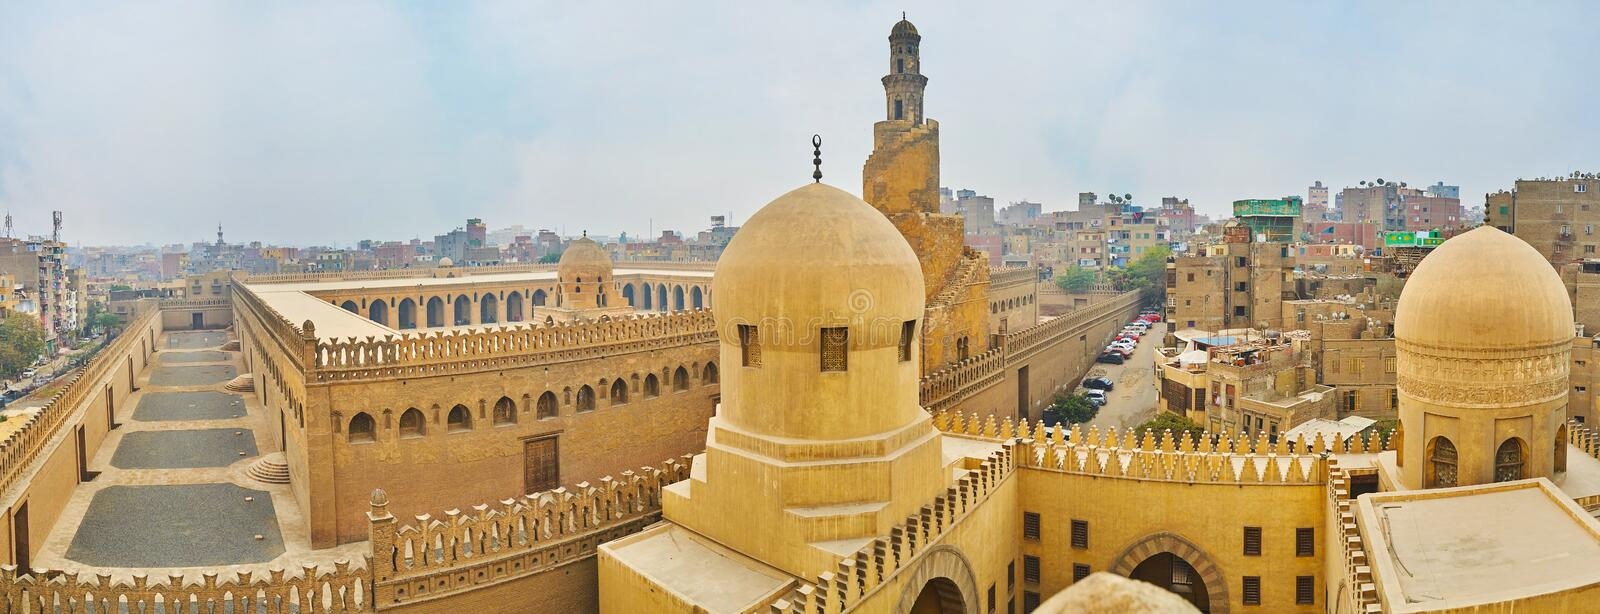 Panorama of Ibn Tulun mosque from the minaret, Cairo, Egypt. The panoramic view of Amir Sarghatmish mosque and Ibn Tulun mosque from the tall minaret royalty free stock photo